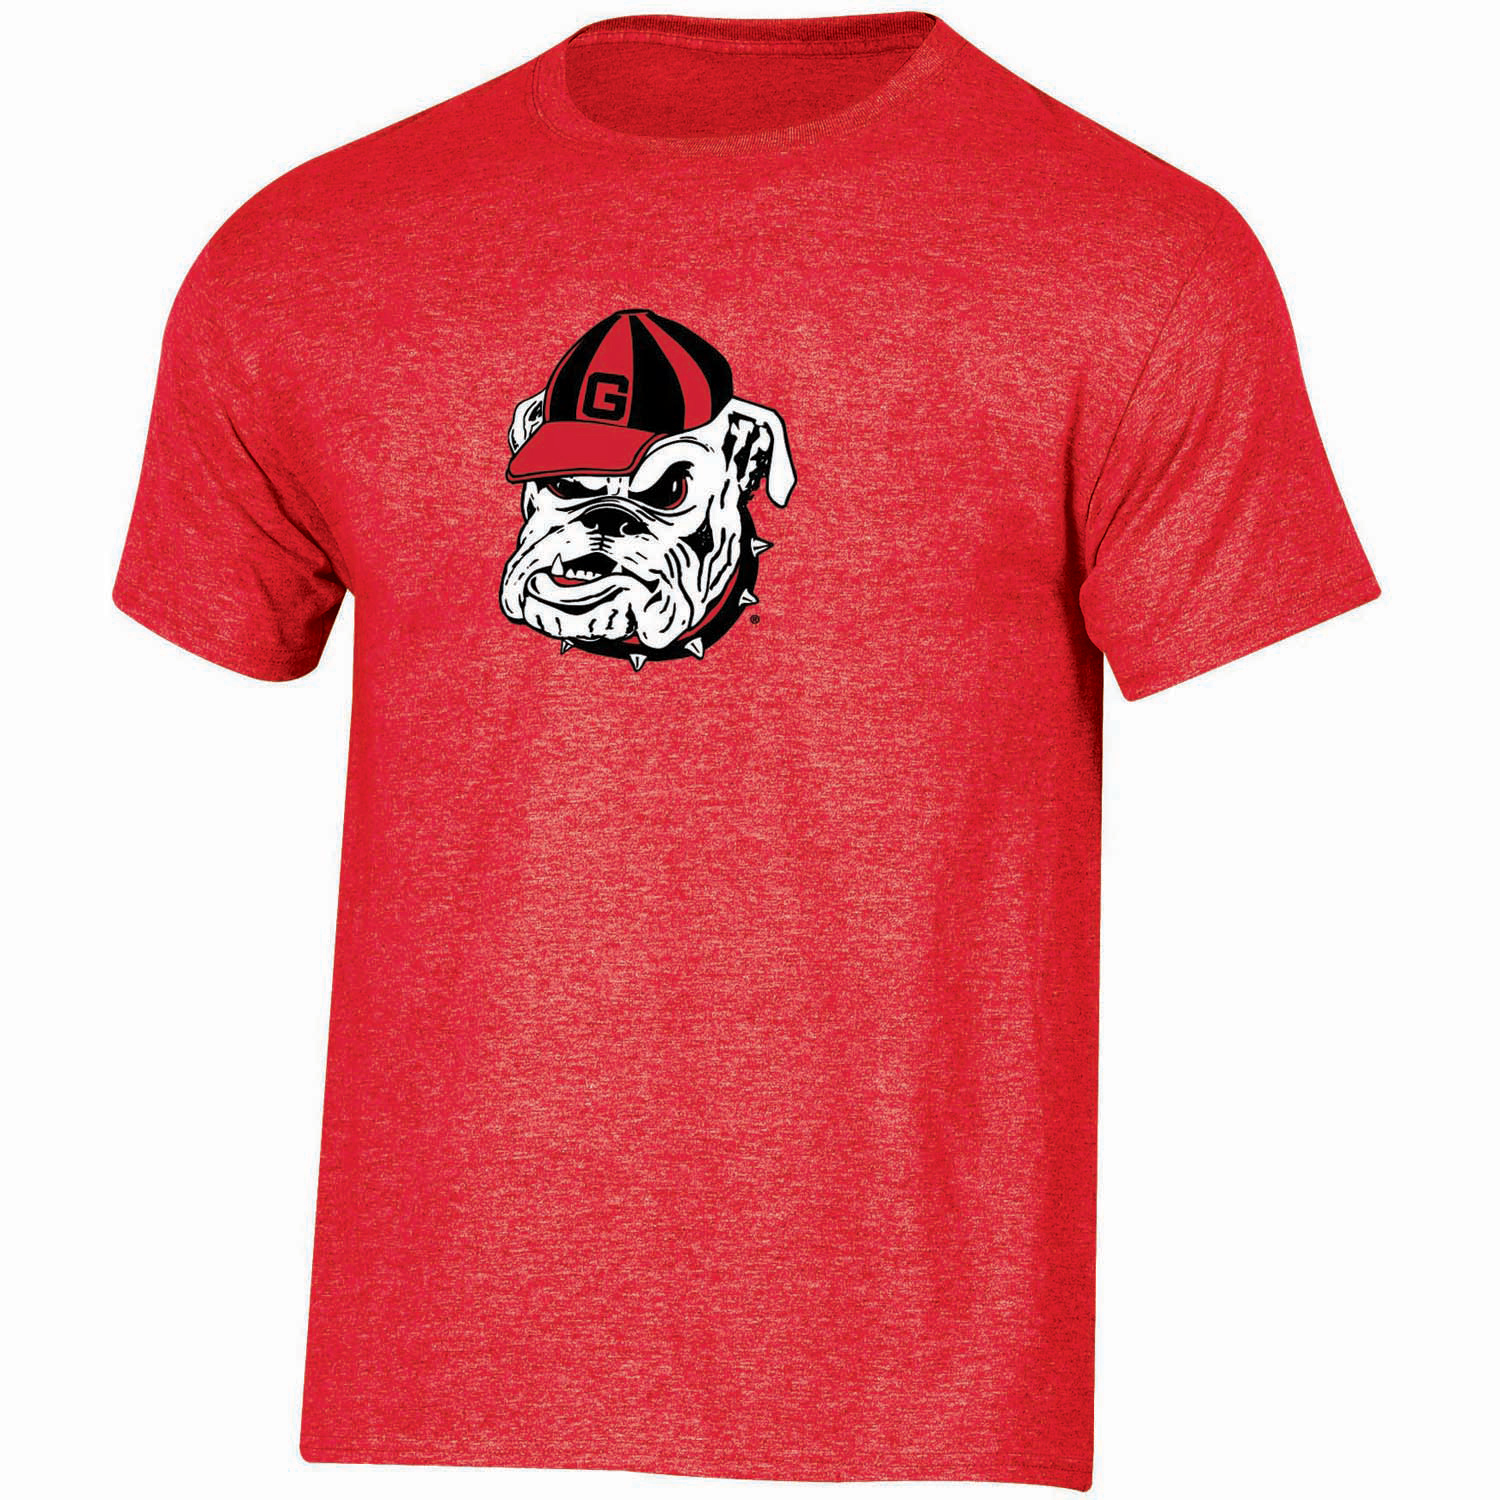 Youth Russell Red Georgia Bulldogs Oversized Graphic Crew Neck T-Shirt